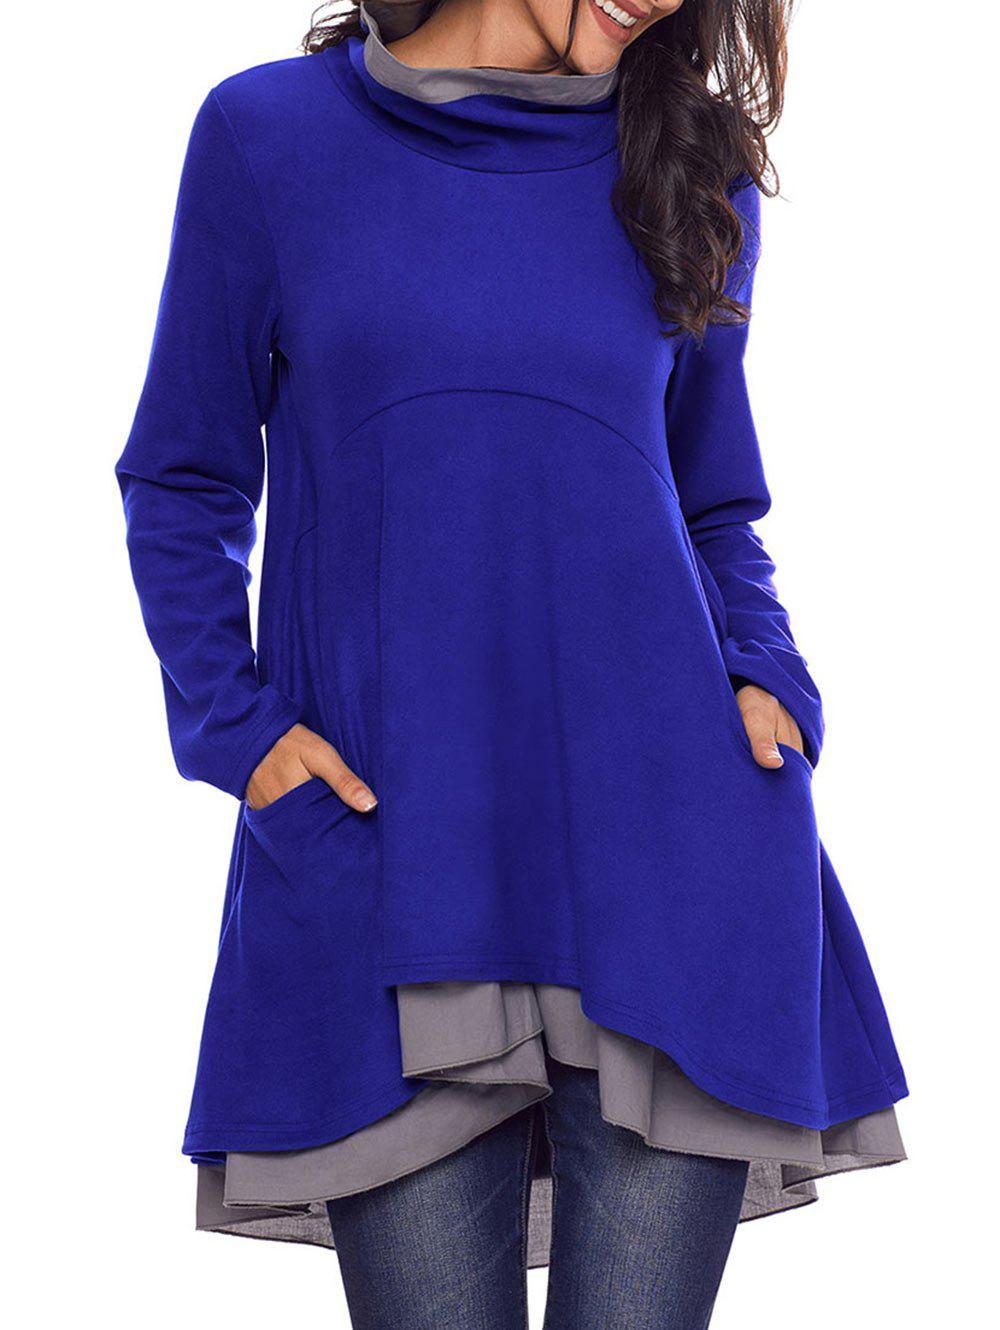 Cowl Neck High Low Tiered Tunic Top - BLUE S